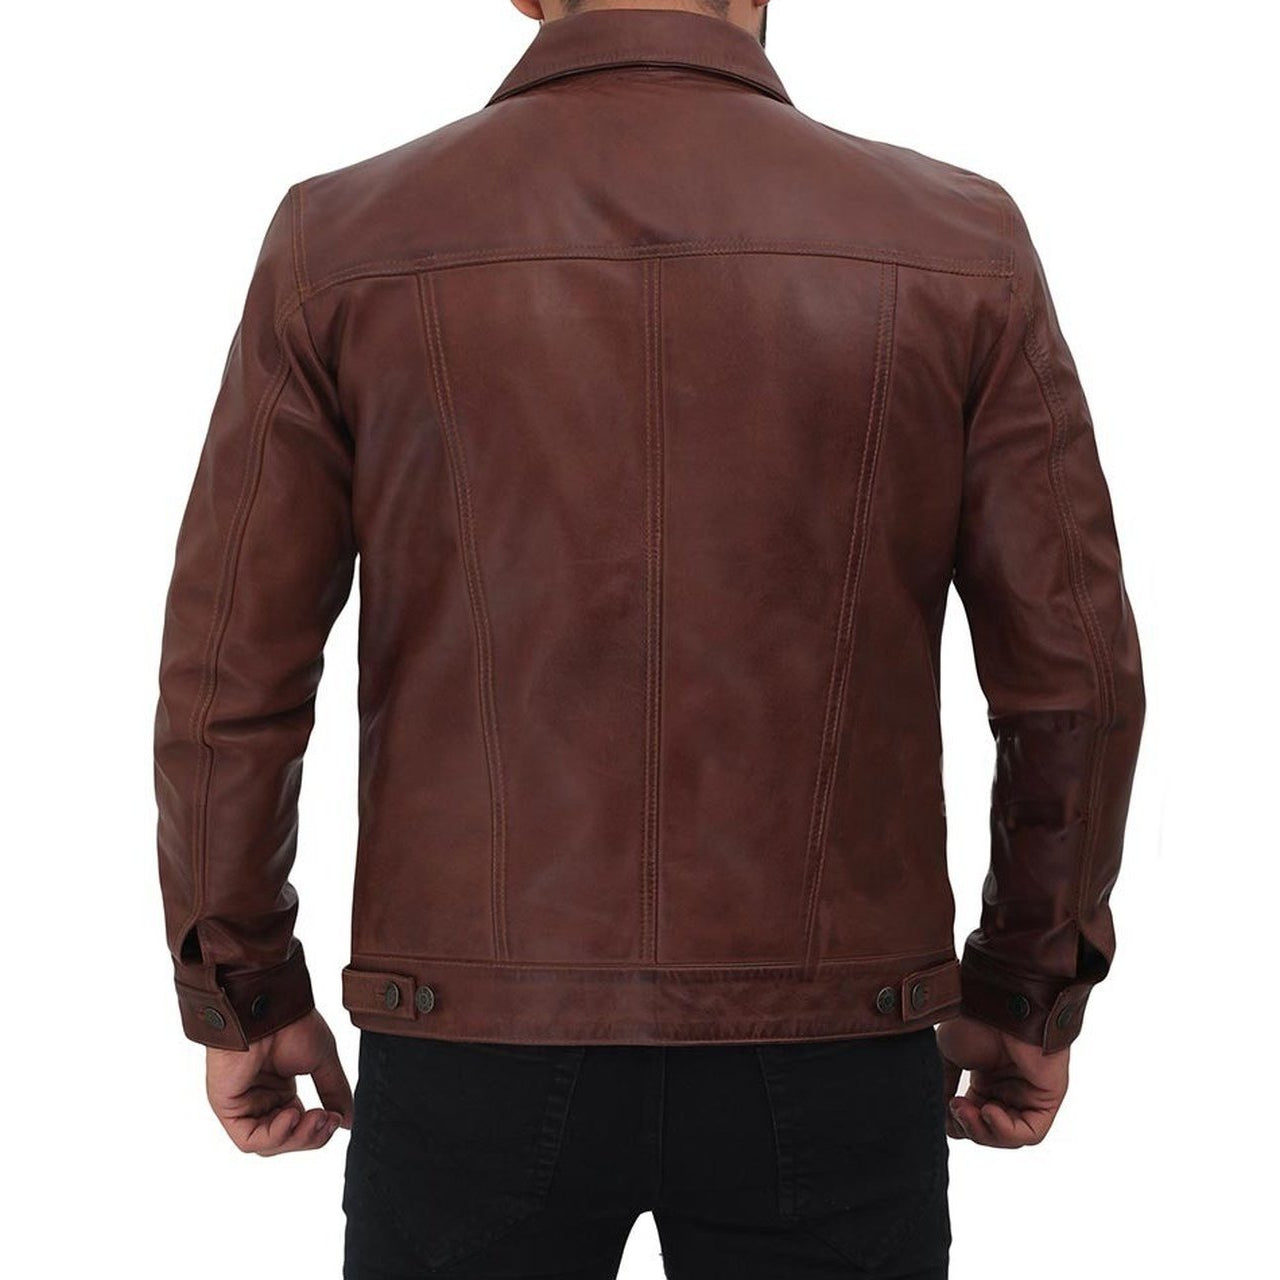 Brown Genuine Leather Trucker Jacket - Leather Jacket